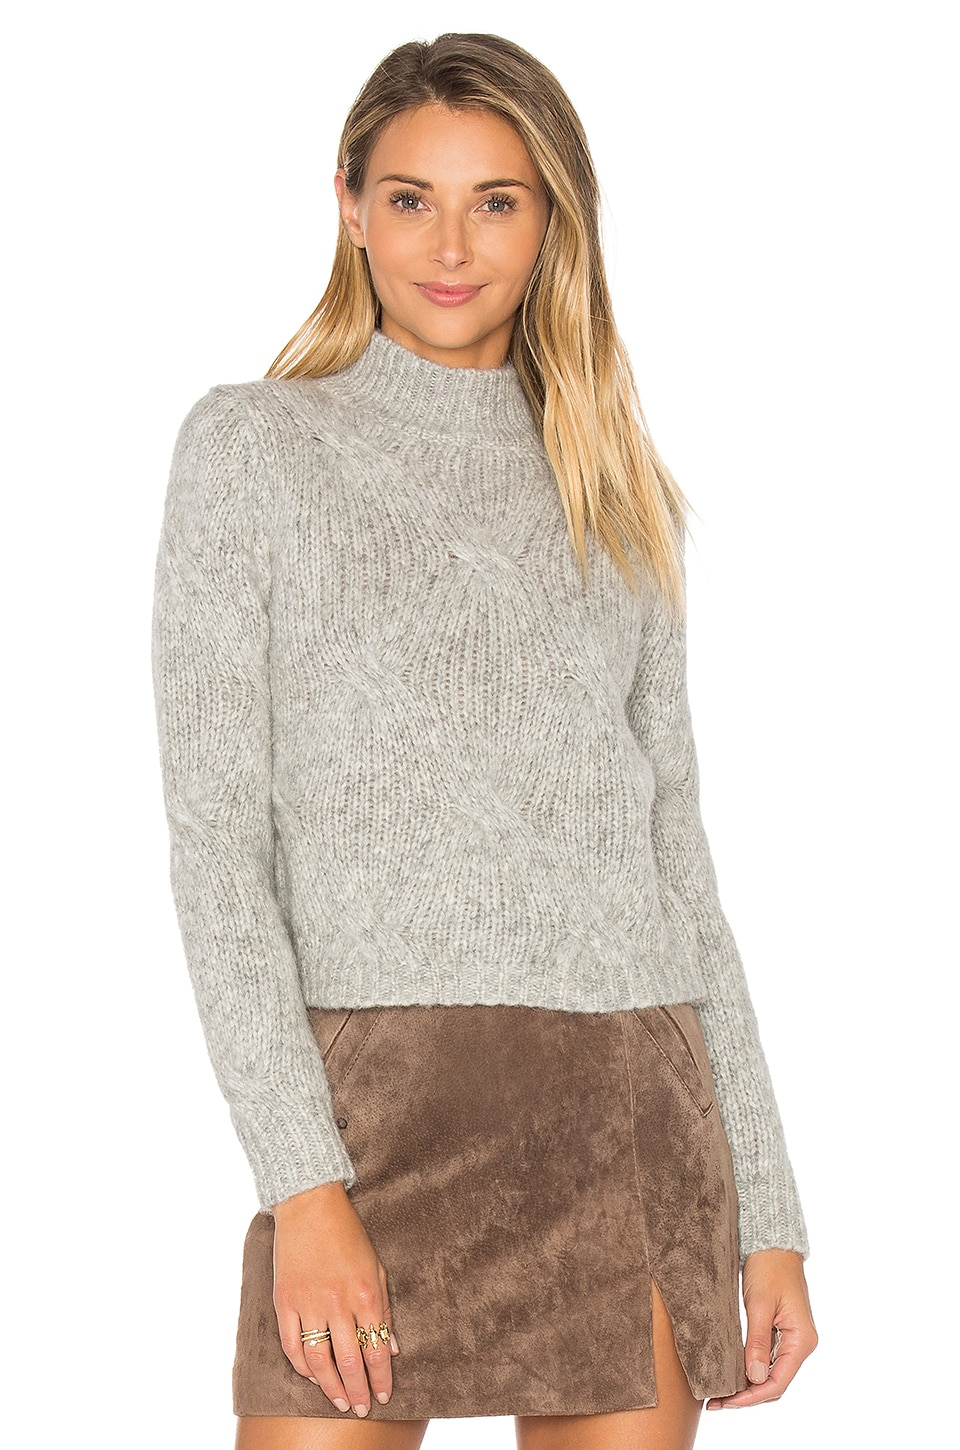 360 Sweater Harlyn Sweater in Grey